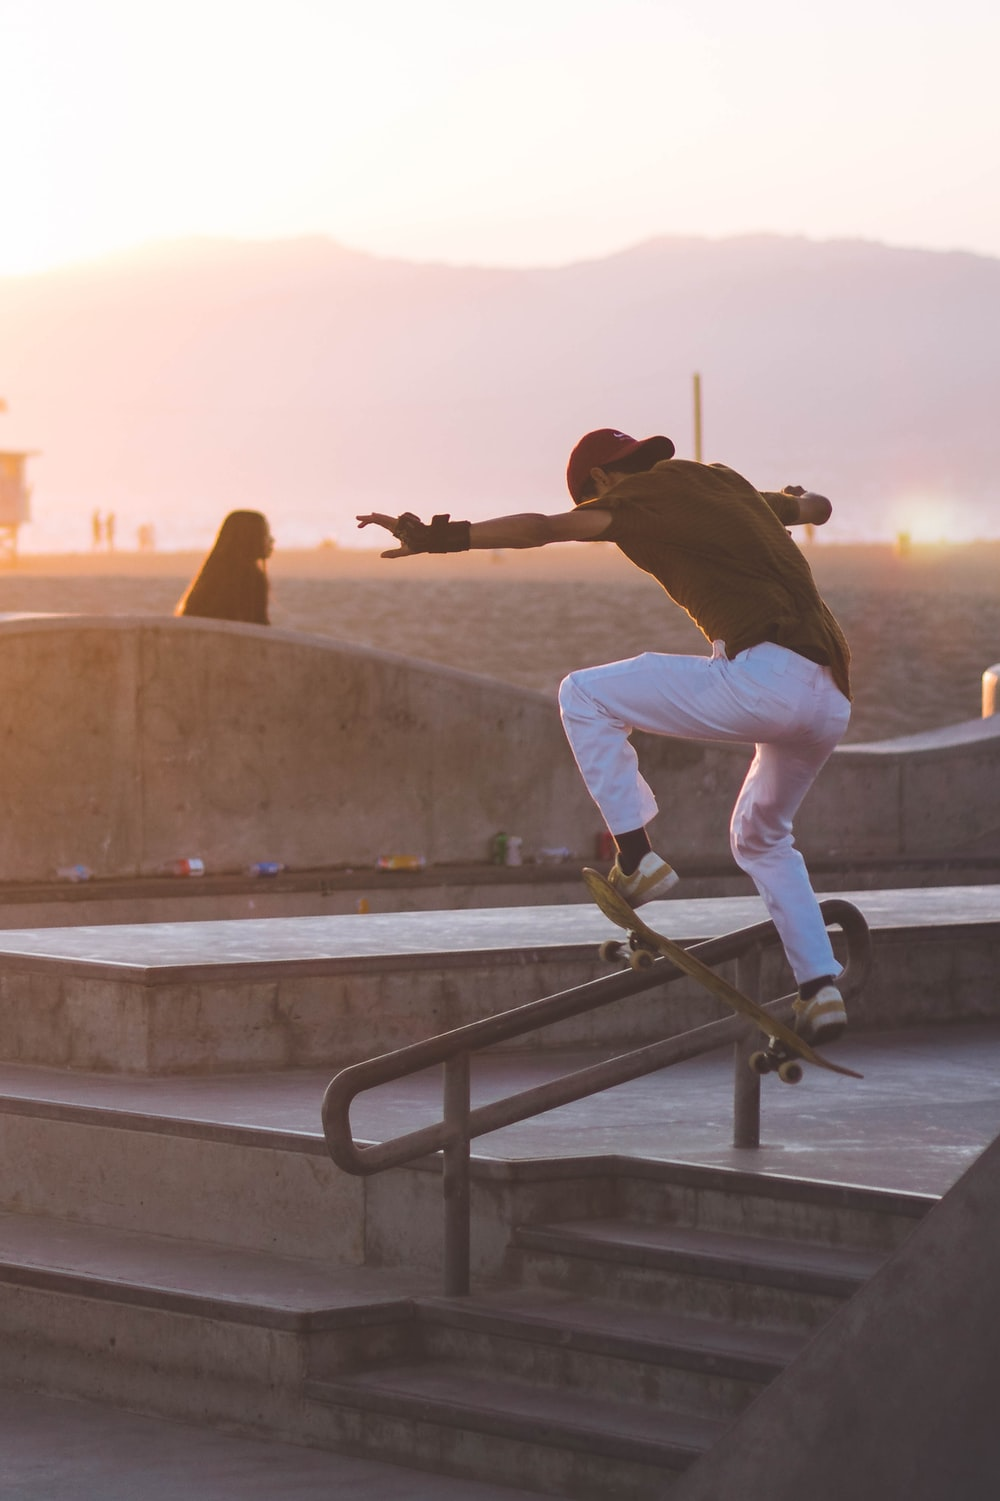 man playing skateboard during golden hour